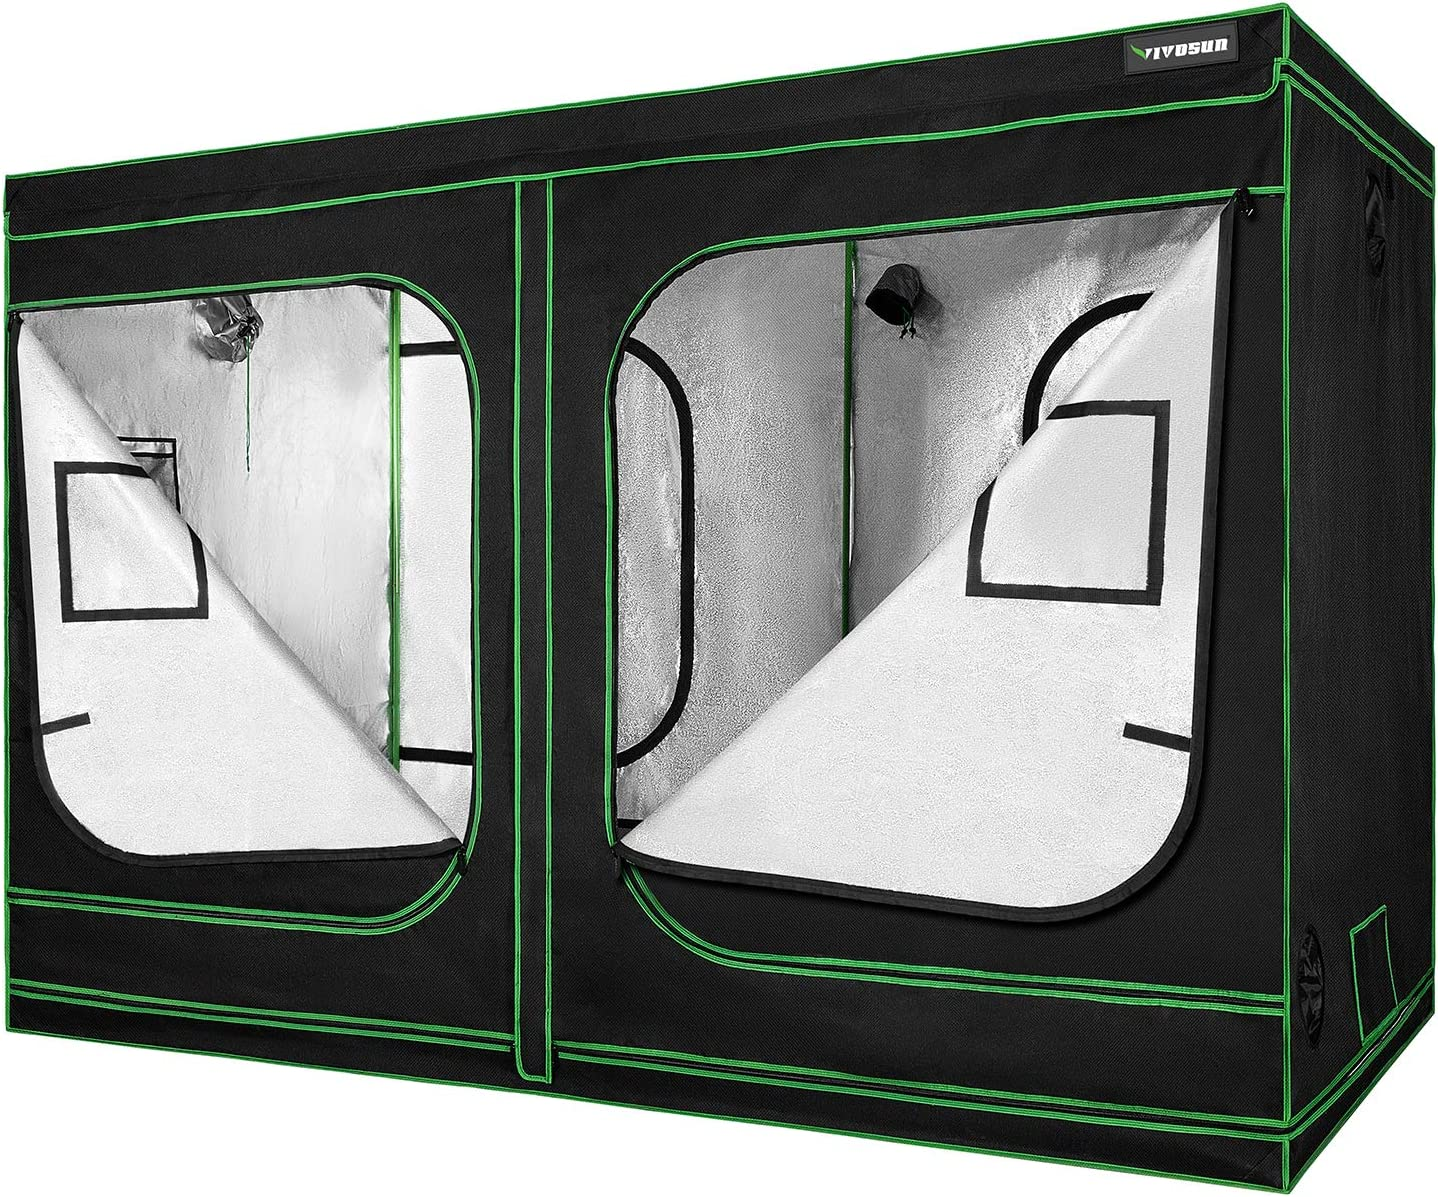 VIVOSUN 96″x48″x80″ Mylar Hydroponic Grow Tent with Observation Window and Floor Tray (4×8)